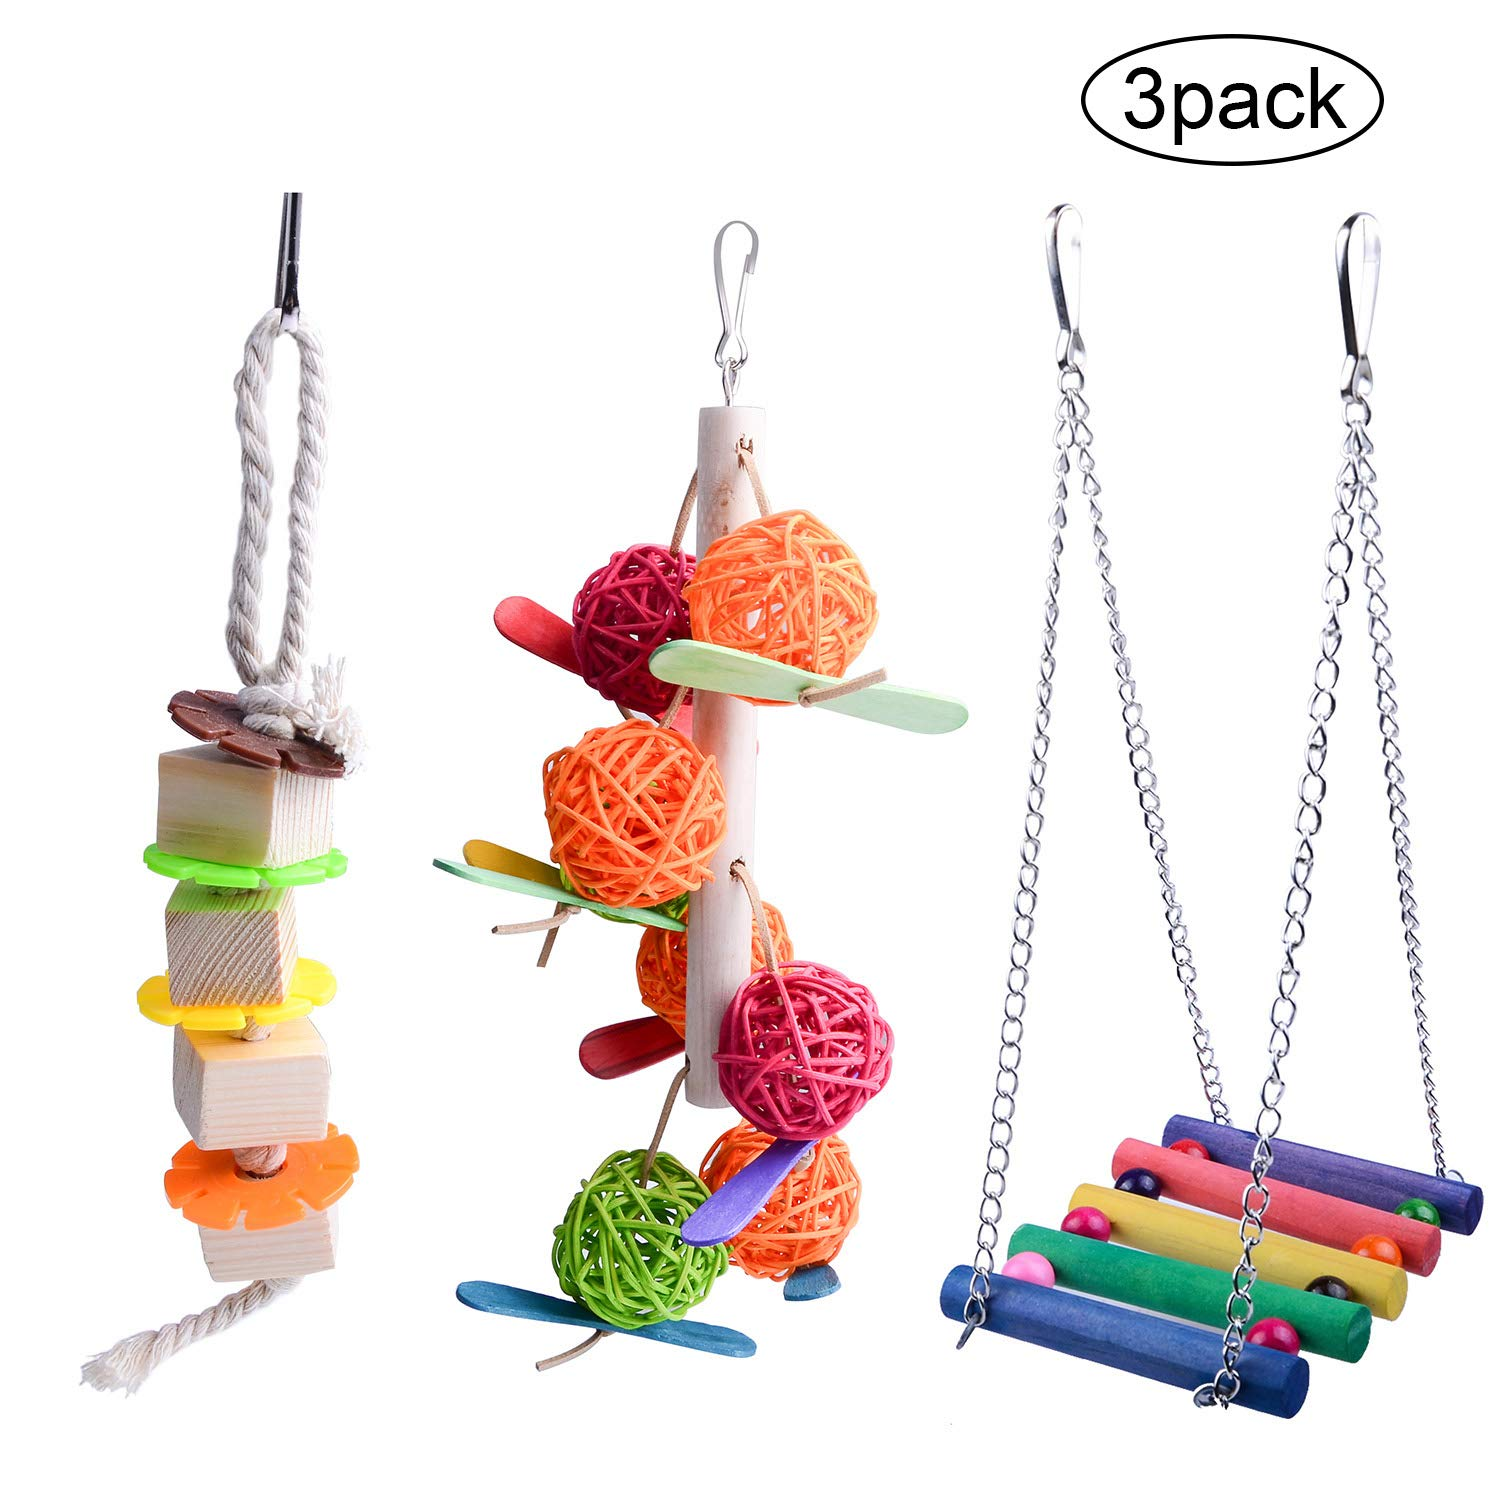 3 Packs Bird Parrot Toys Hanging Bell Pet Bird Cage Hammock Swing Toy Hanging Toy for Small Parakeets Cockatiels, Conures, Macaws, Parrots, Love Birds, Finches by MDN